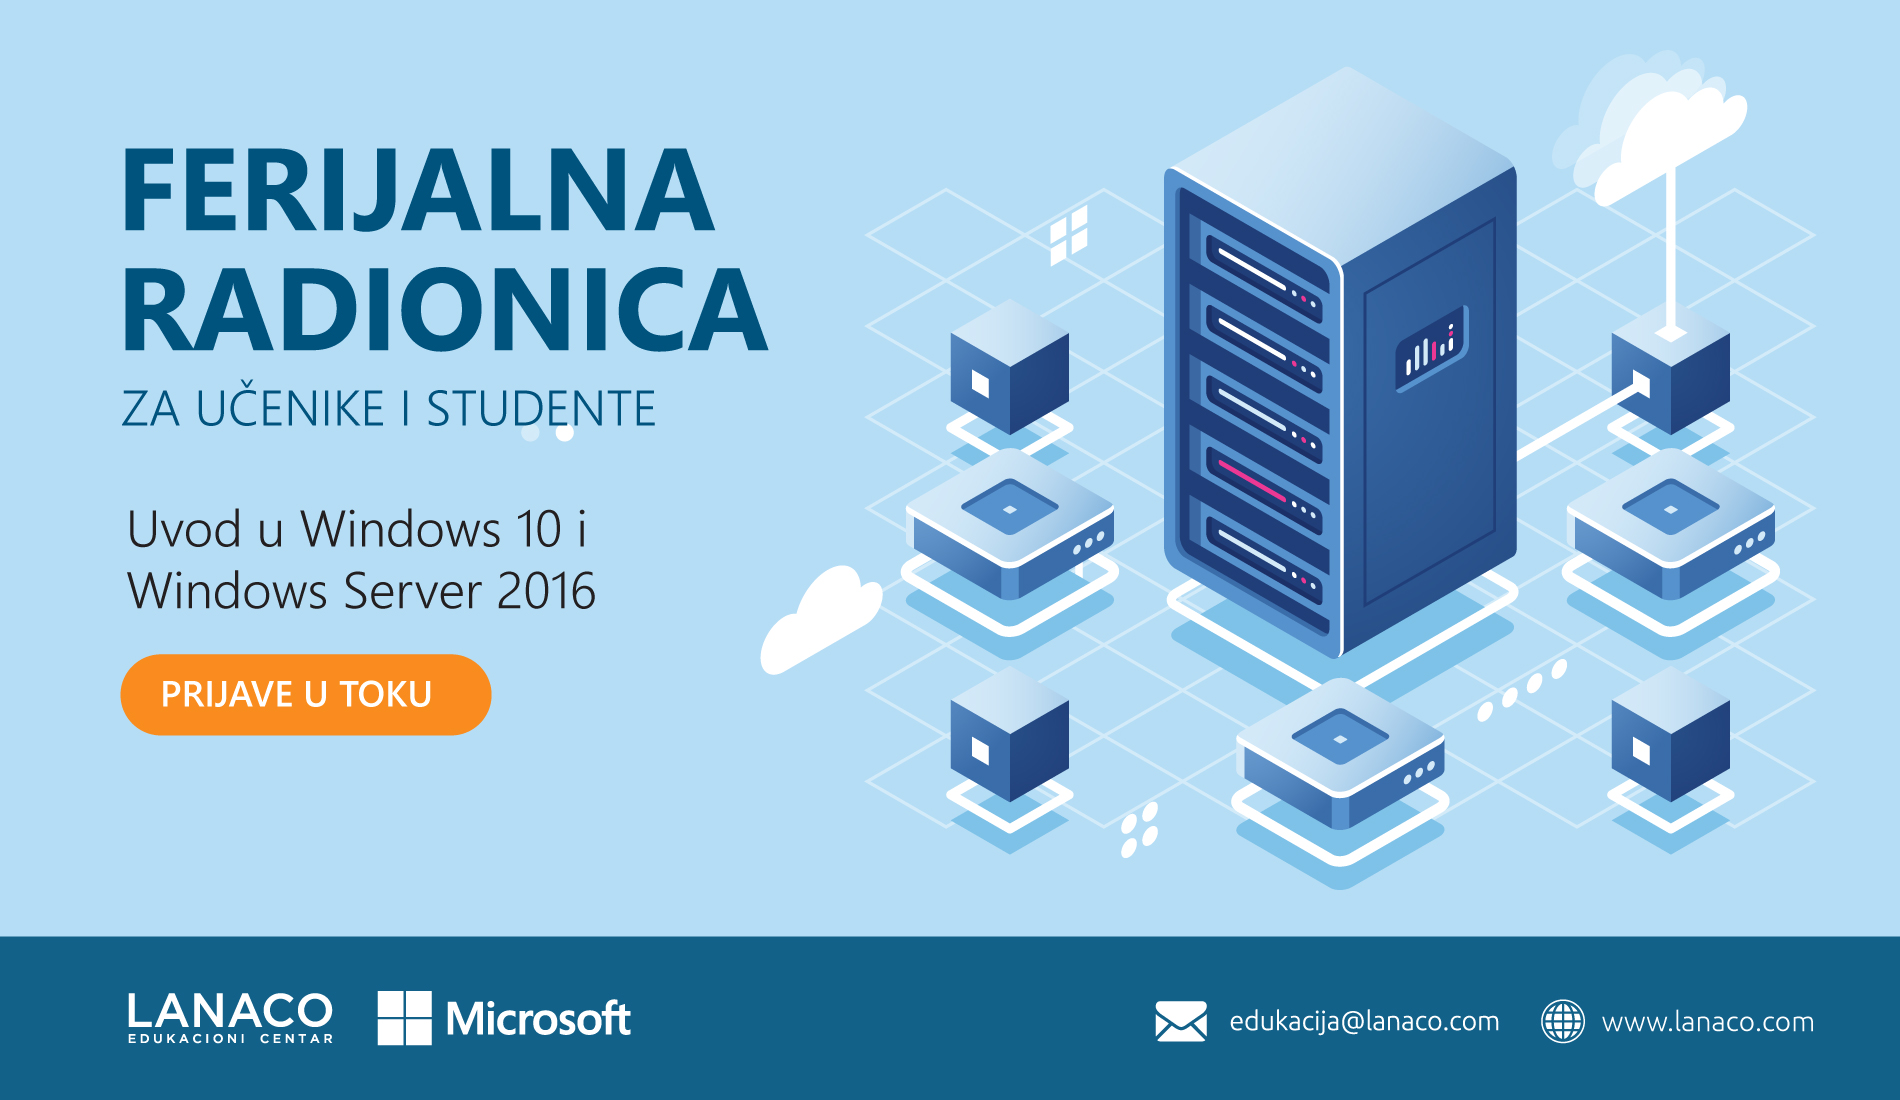 Ferijalna radionica – Windows 10 i Windows Server 2016